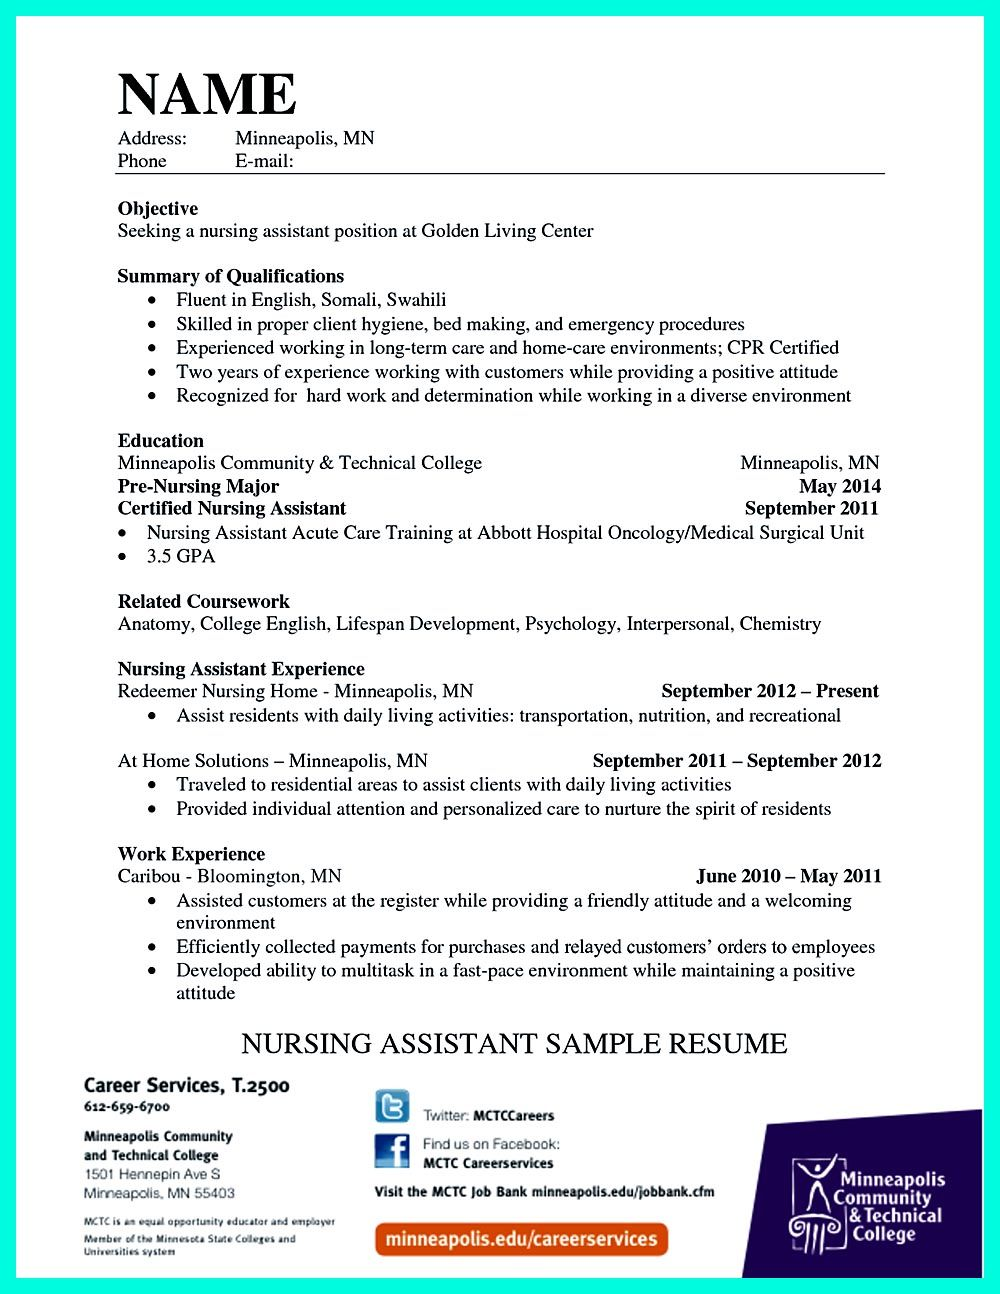 Sample Resume For Nursing Assistant Extraordinary Writing Certified Nursing Assistant Resume Is Simple If You Follow .